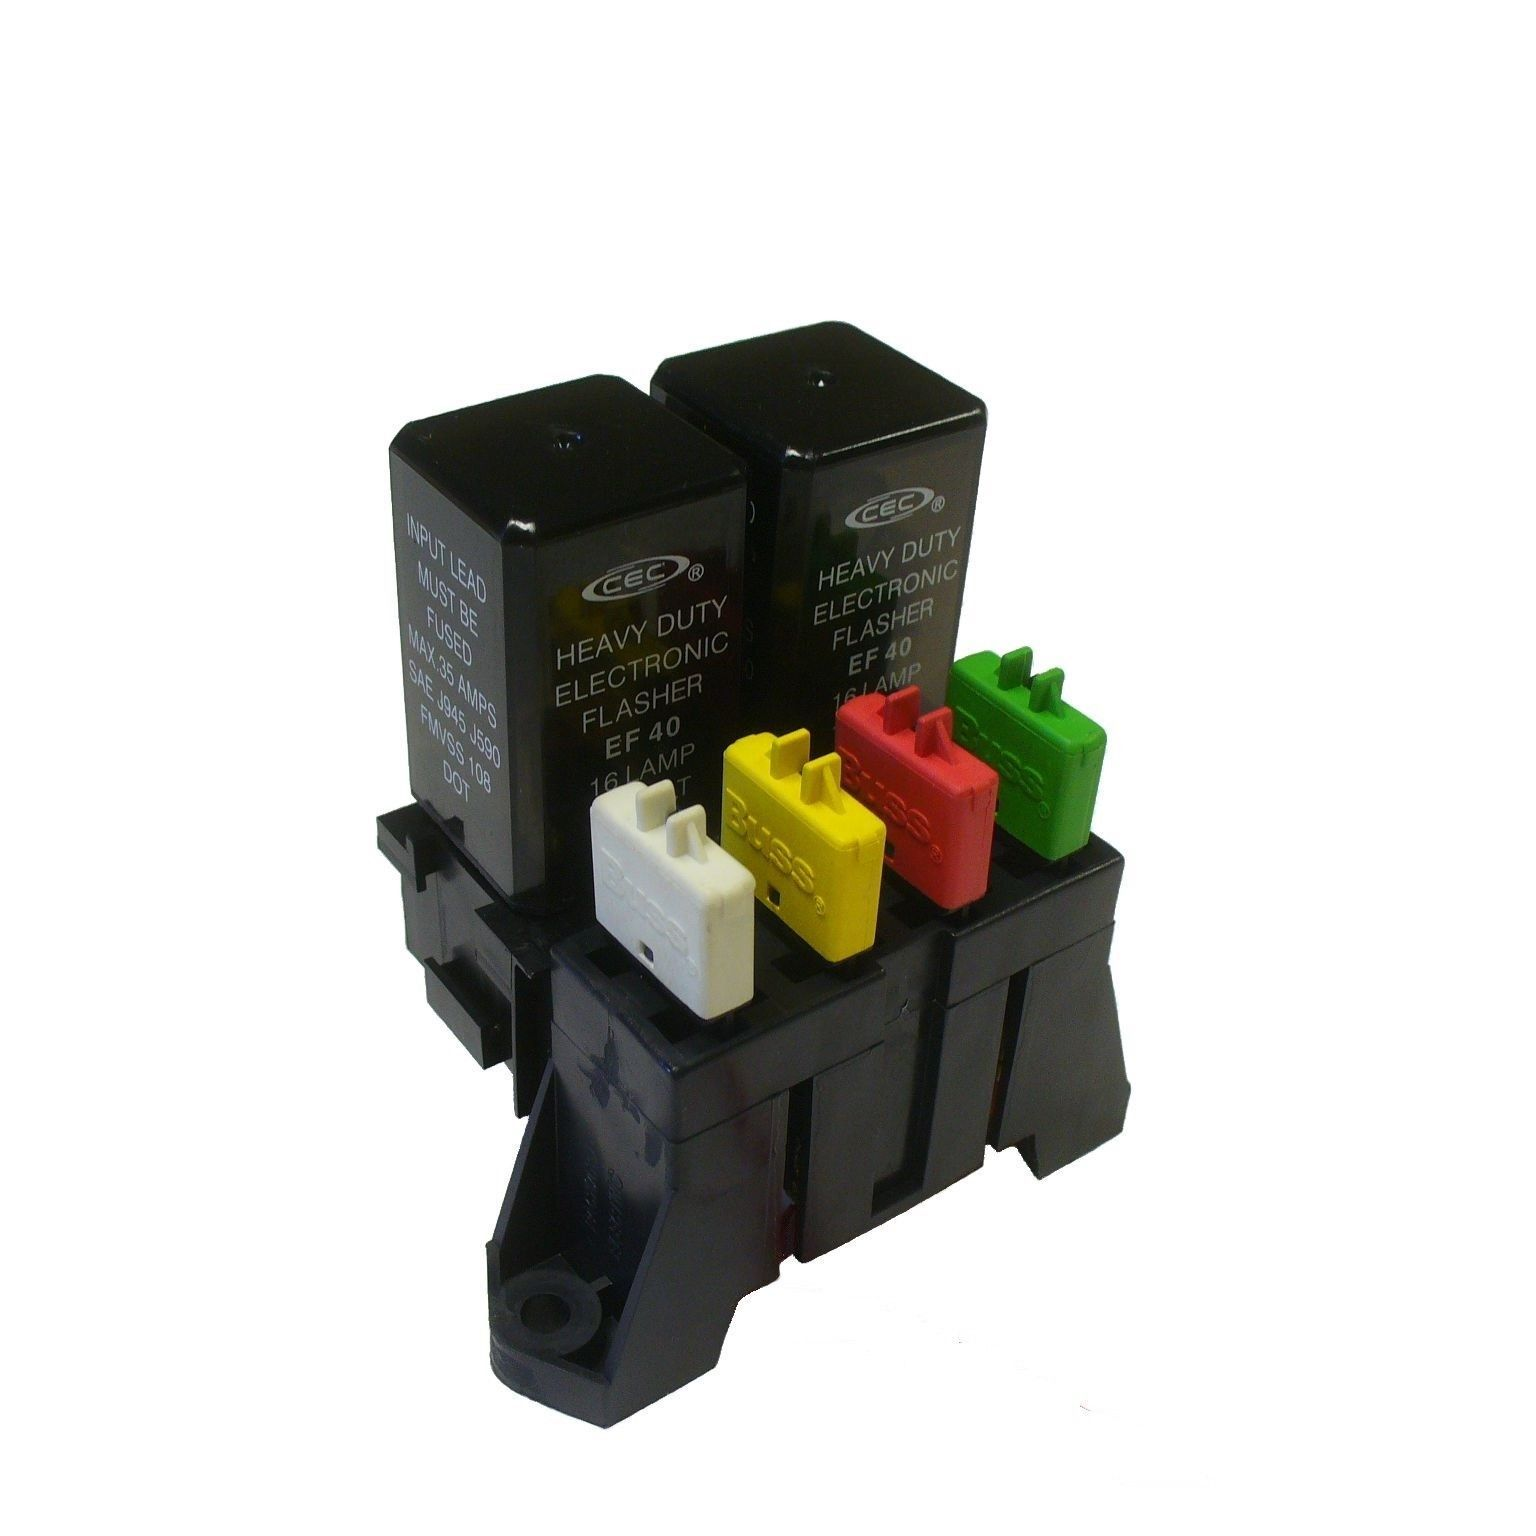 891be4450dccbe9602cc066c9d426419 atc 4 way fuse with dual relay panel block holder with buss bar wagongear fuse box at panicattacktreatment.co